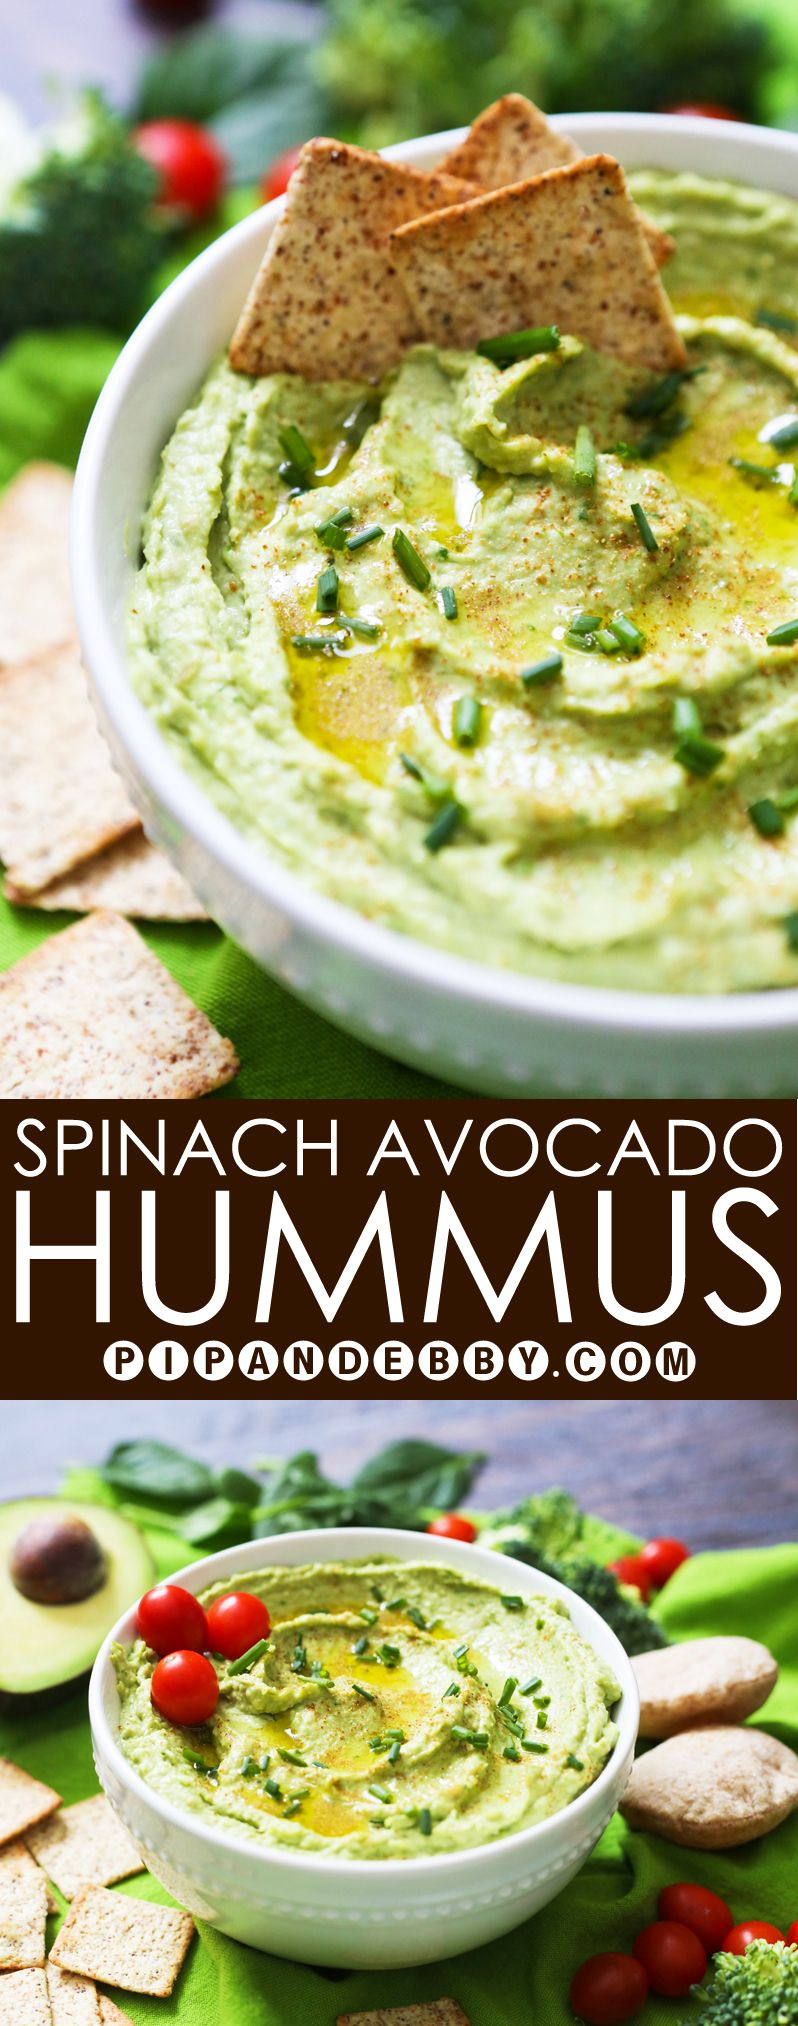 Spinach Avocado Hummus | Add an extra healthy, green twist to your hummus! Serve…